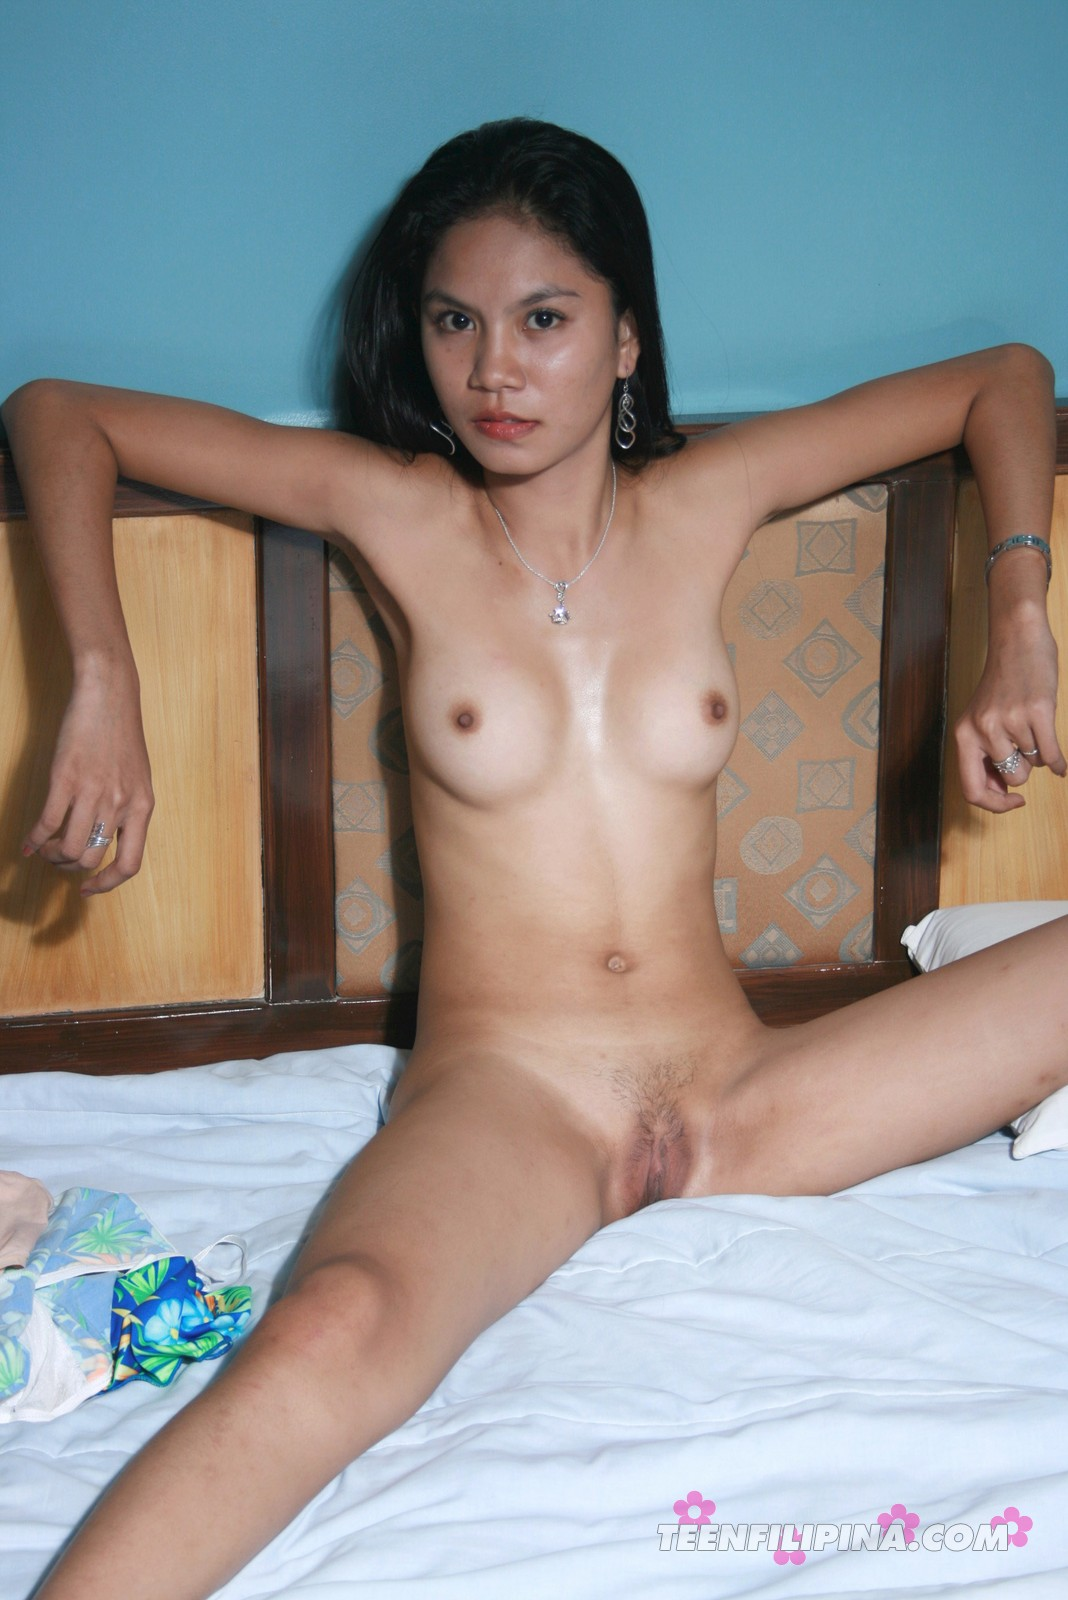 Cute skinny Filipina babe Gerry poses nude.